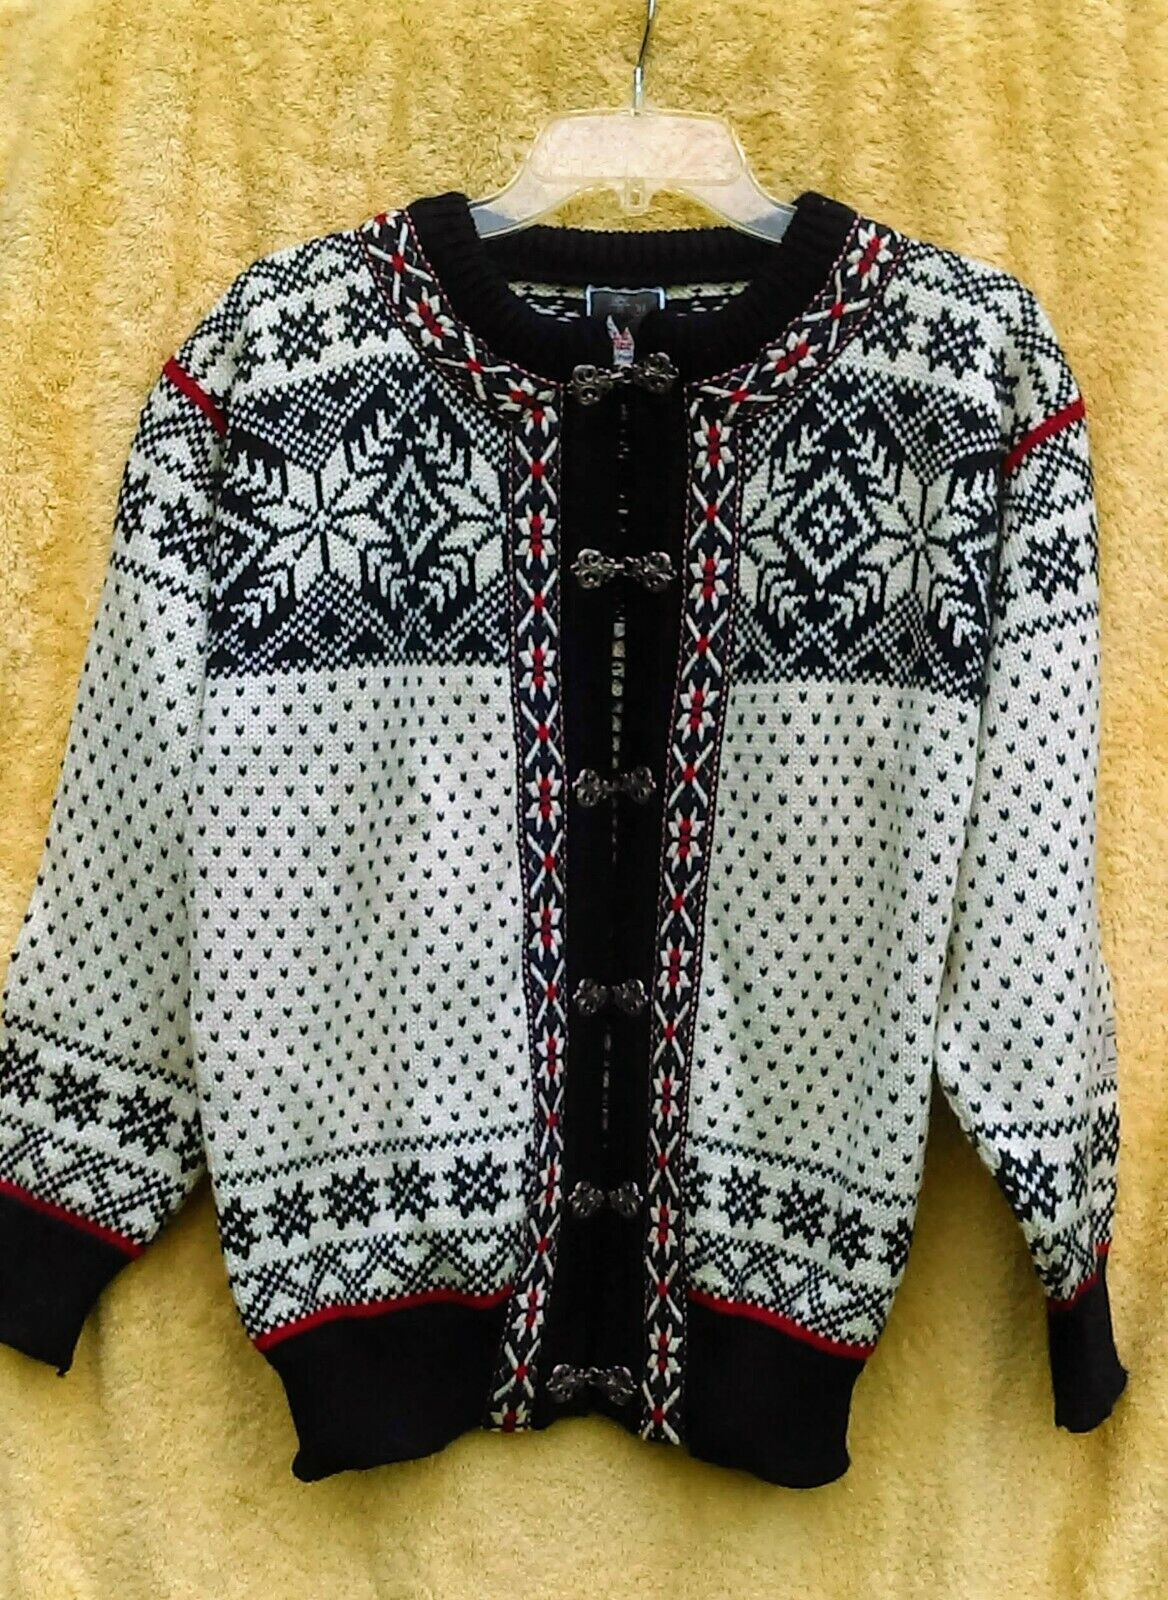 DALE NORWAY White bluee Red Wool Nordic Cardigan Sweater Pewter Clasp Ribbon S 40